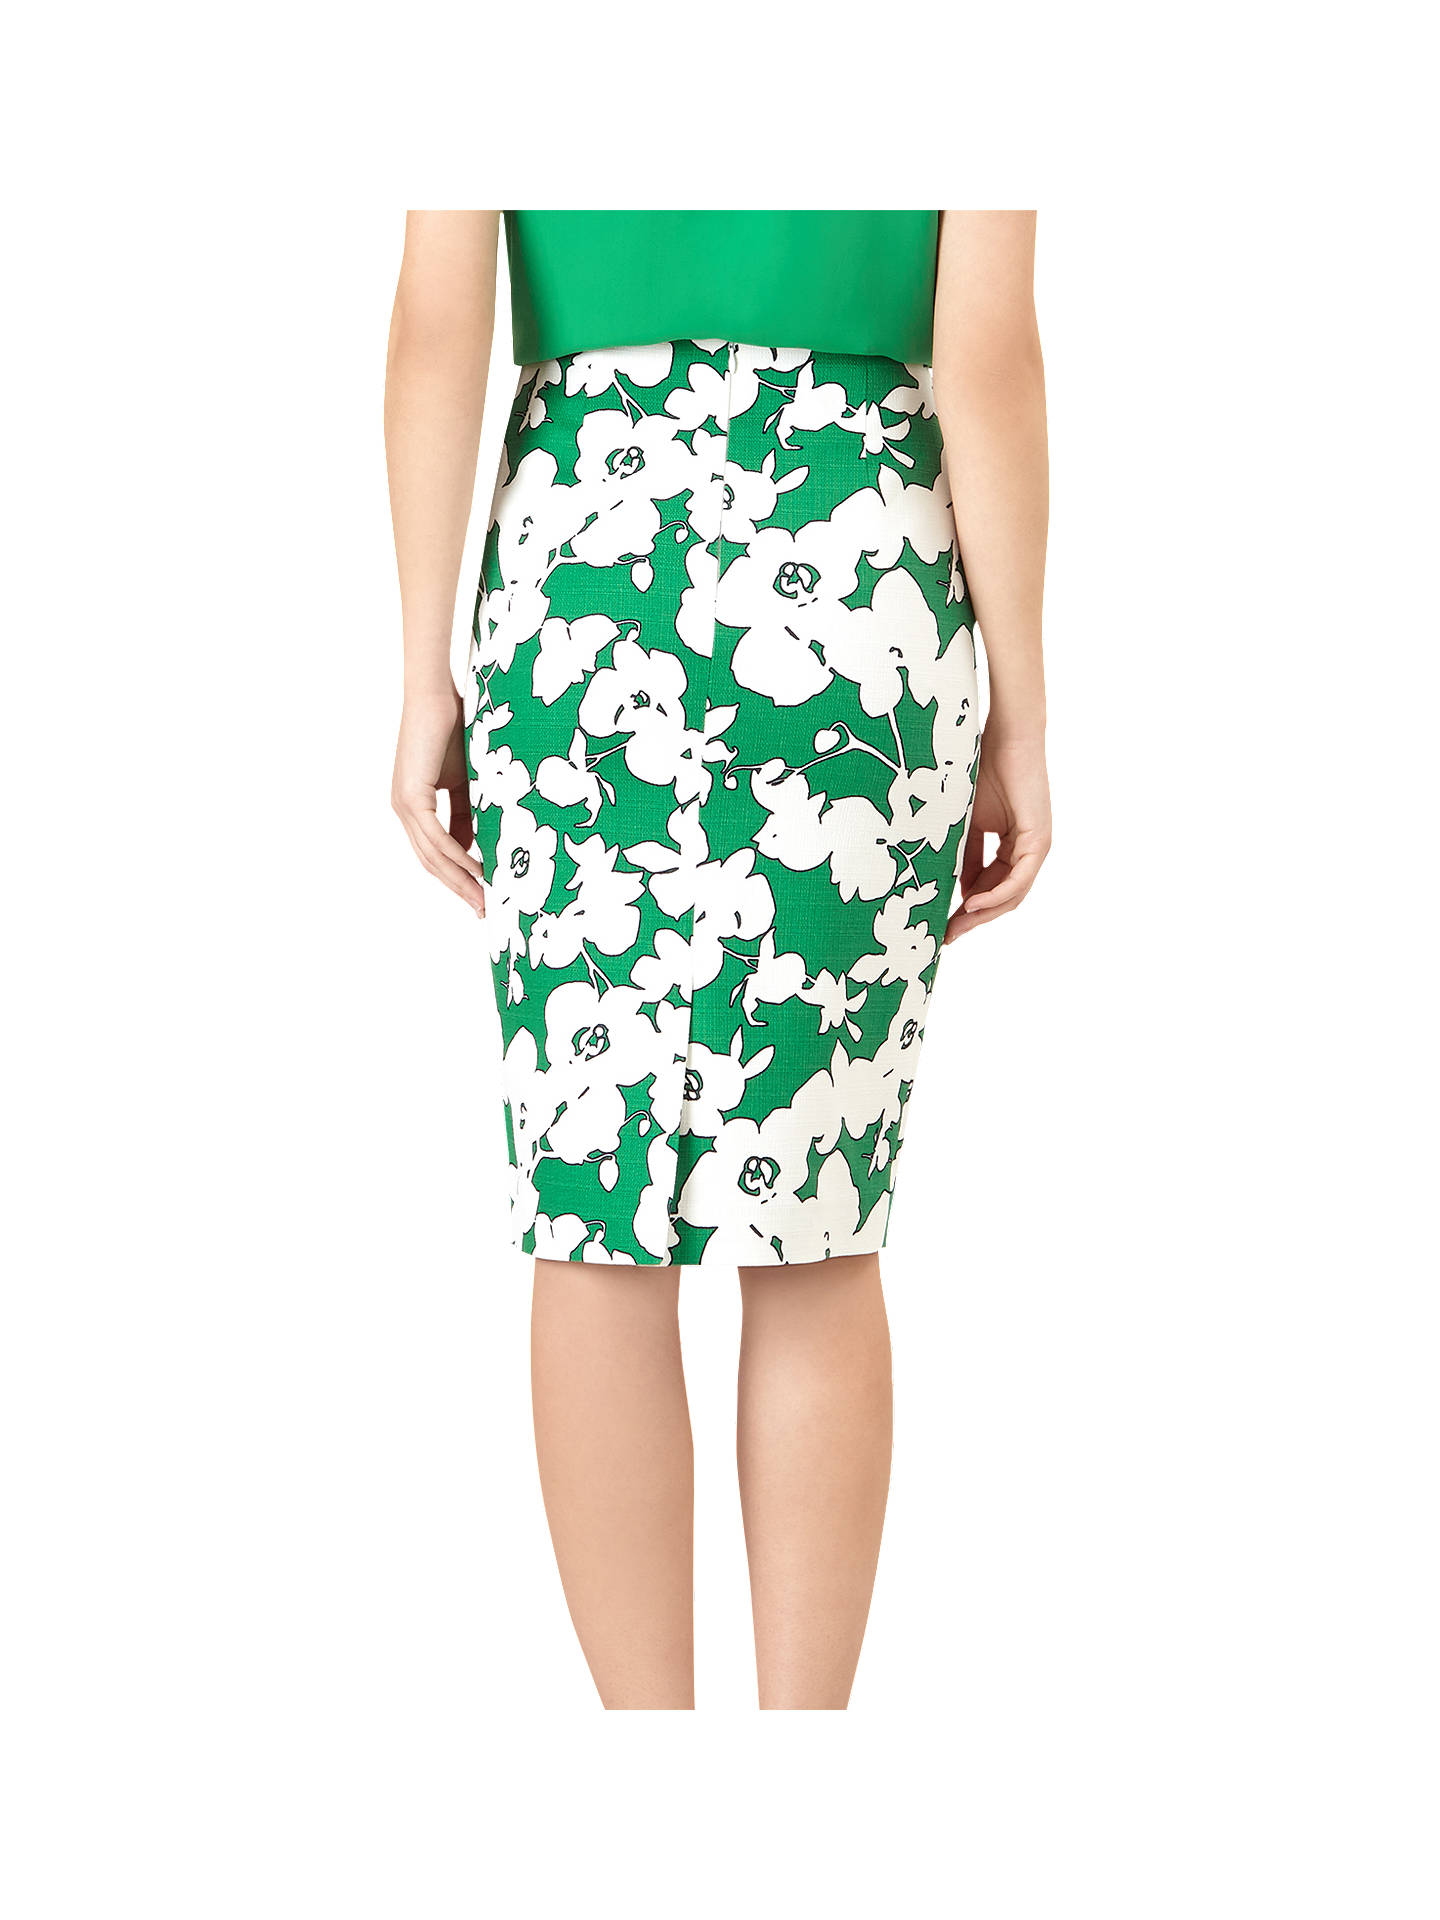 BuyHobbs Evie Skirt, Multi, 6 Online at johnlewis.com